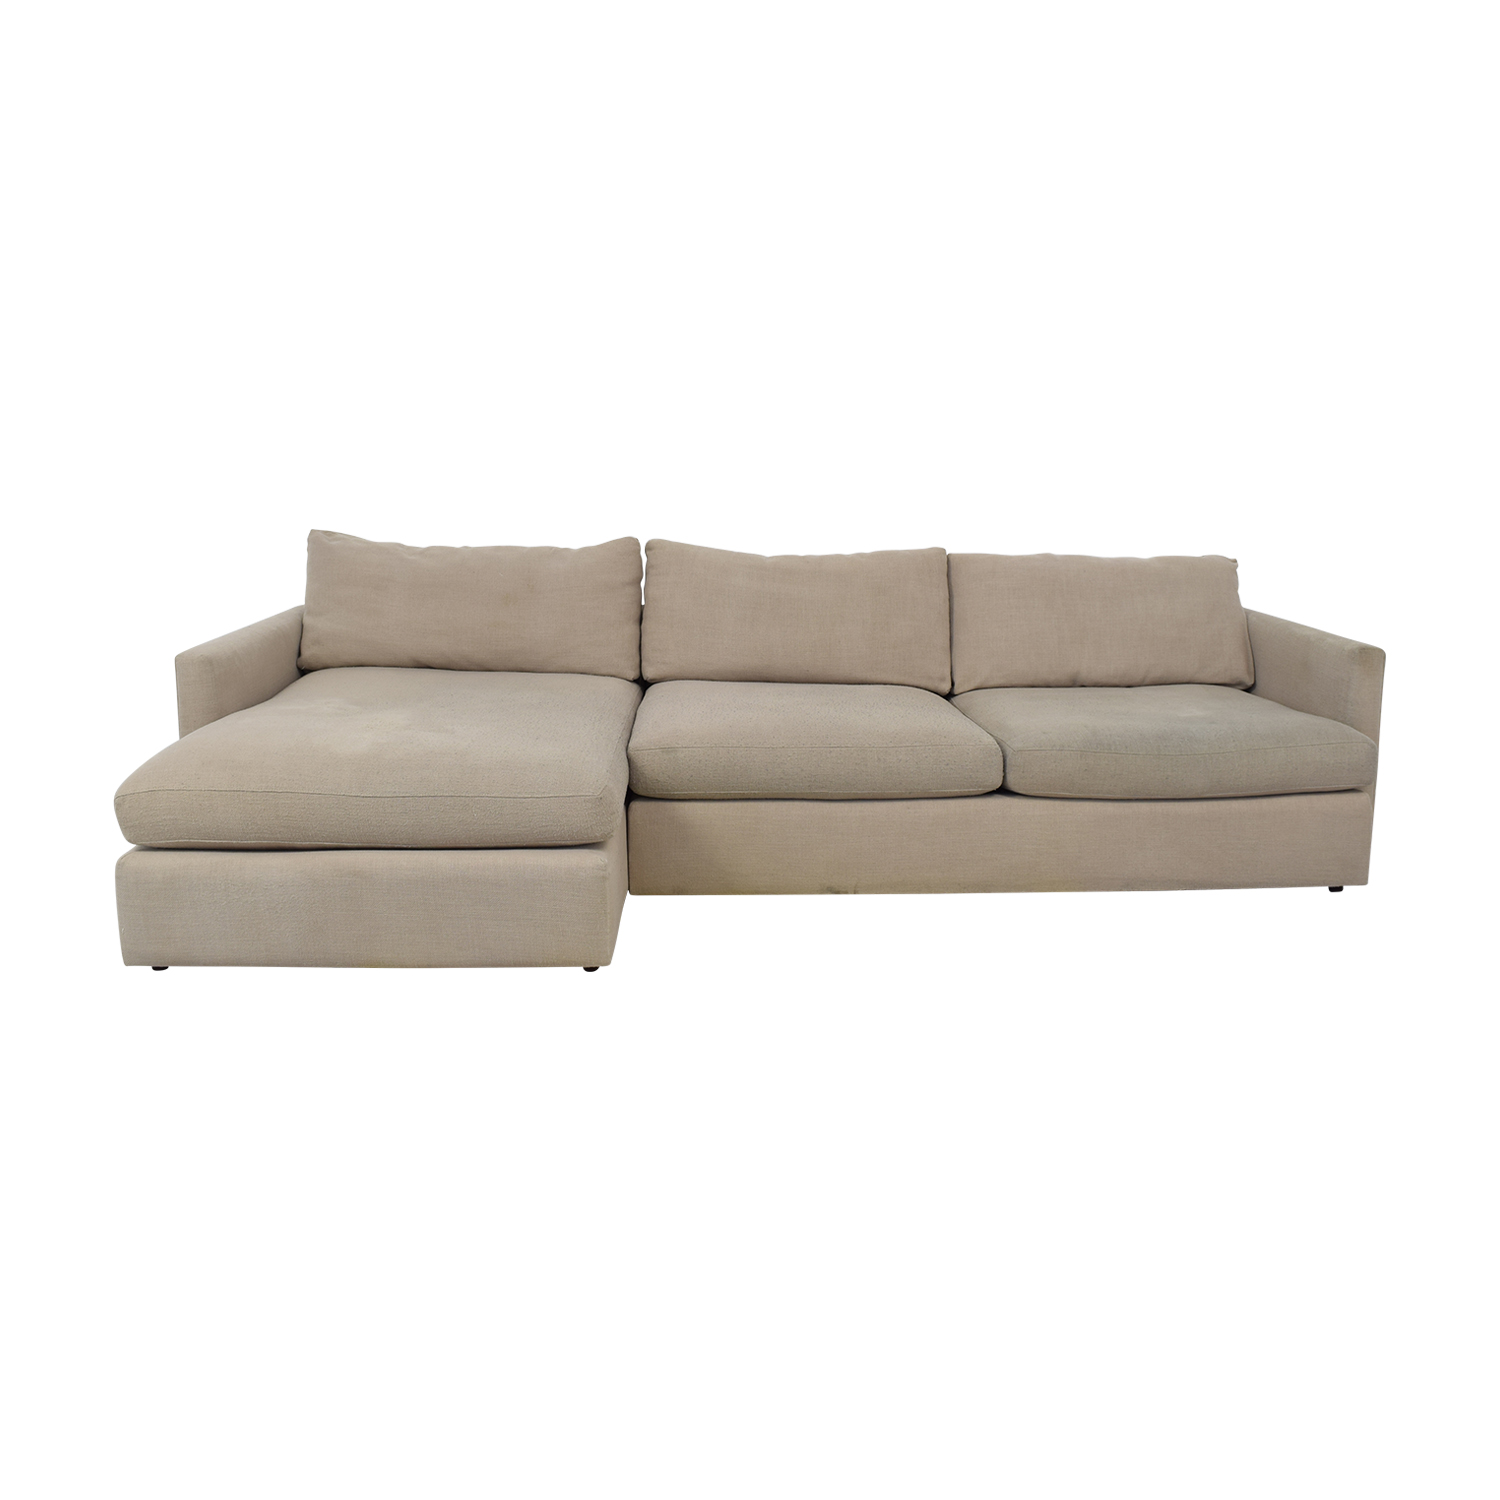 Crate & Barrel Crate & Barrel Axis II Chaise Sectional Sofa Sofas